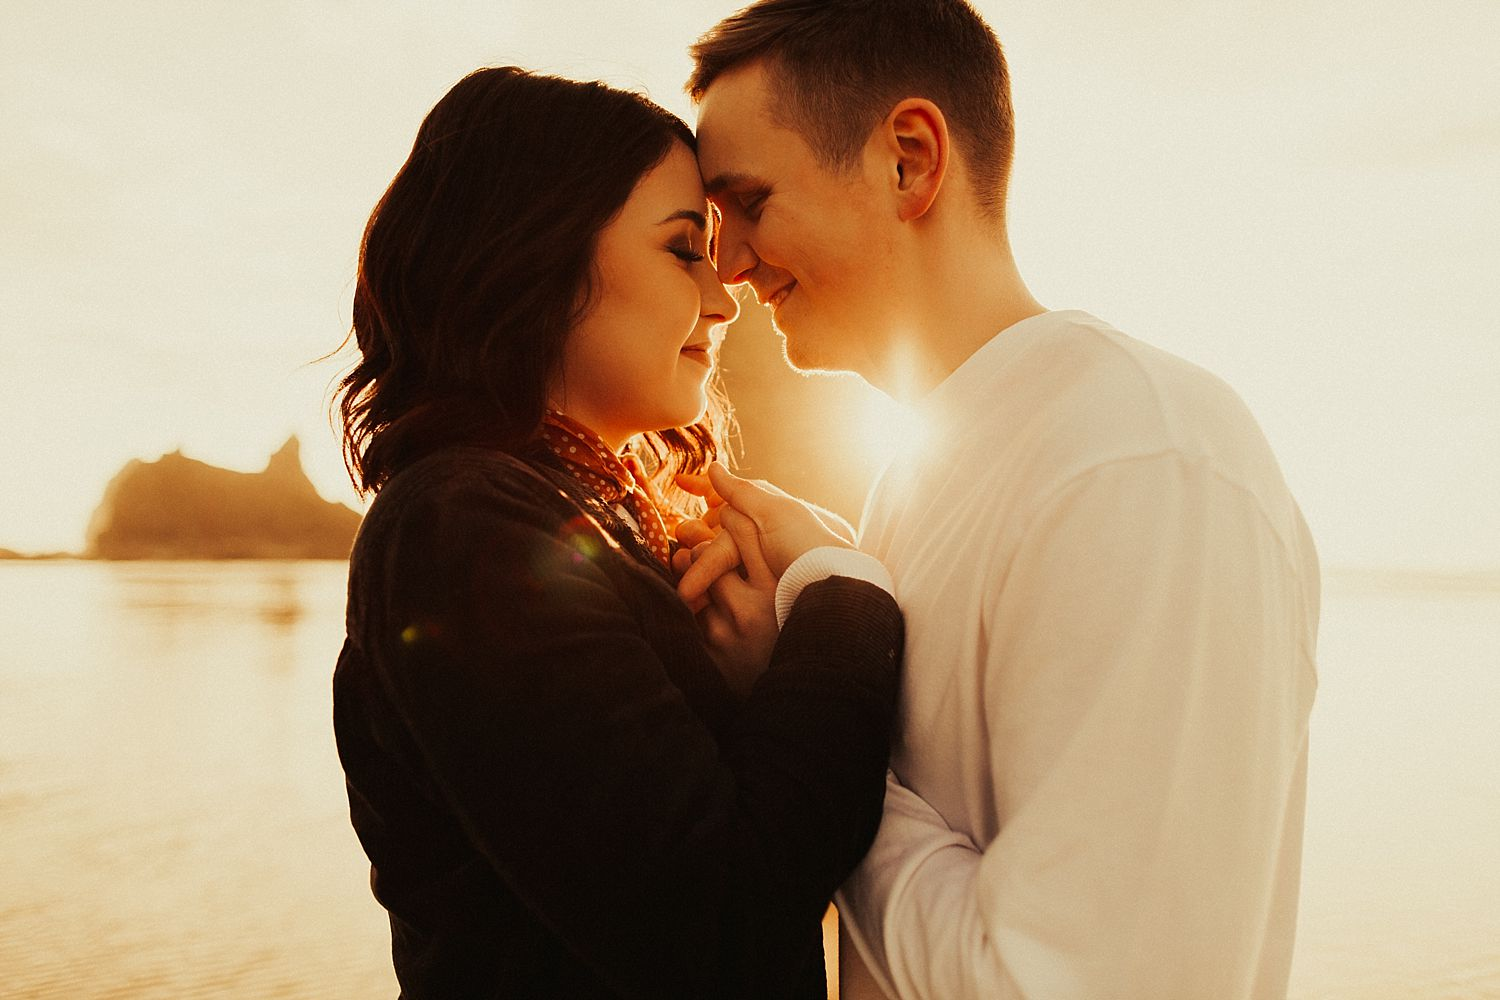 cannon-beach-engagement-session_1458.jpg